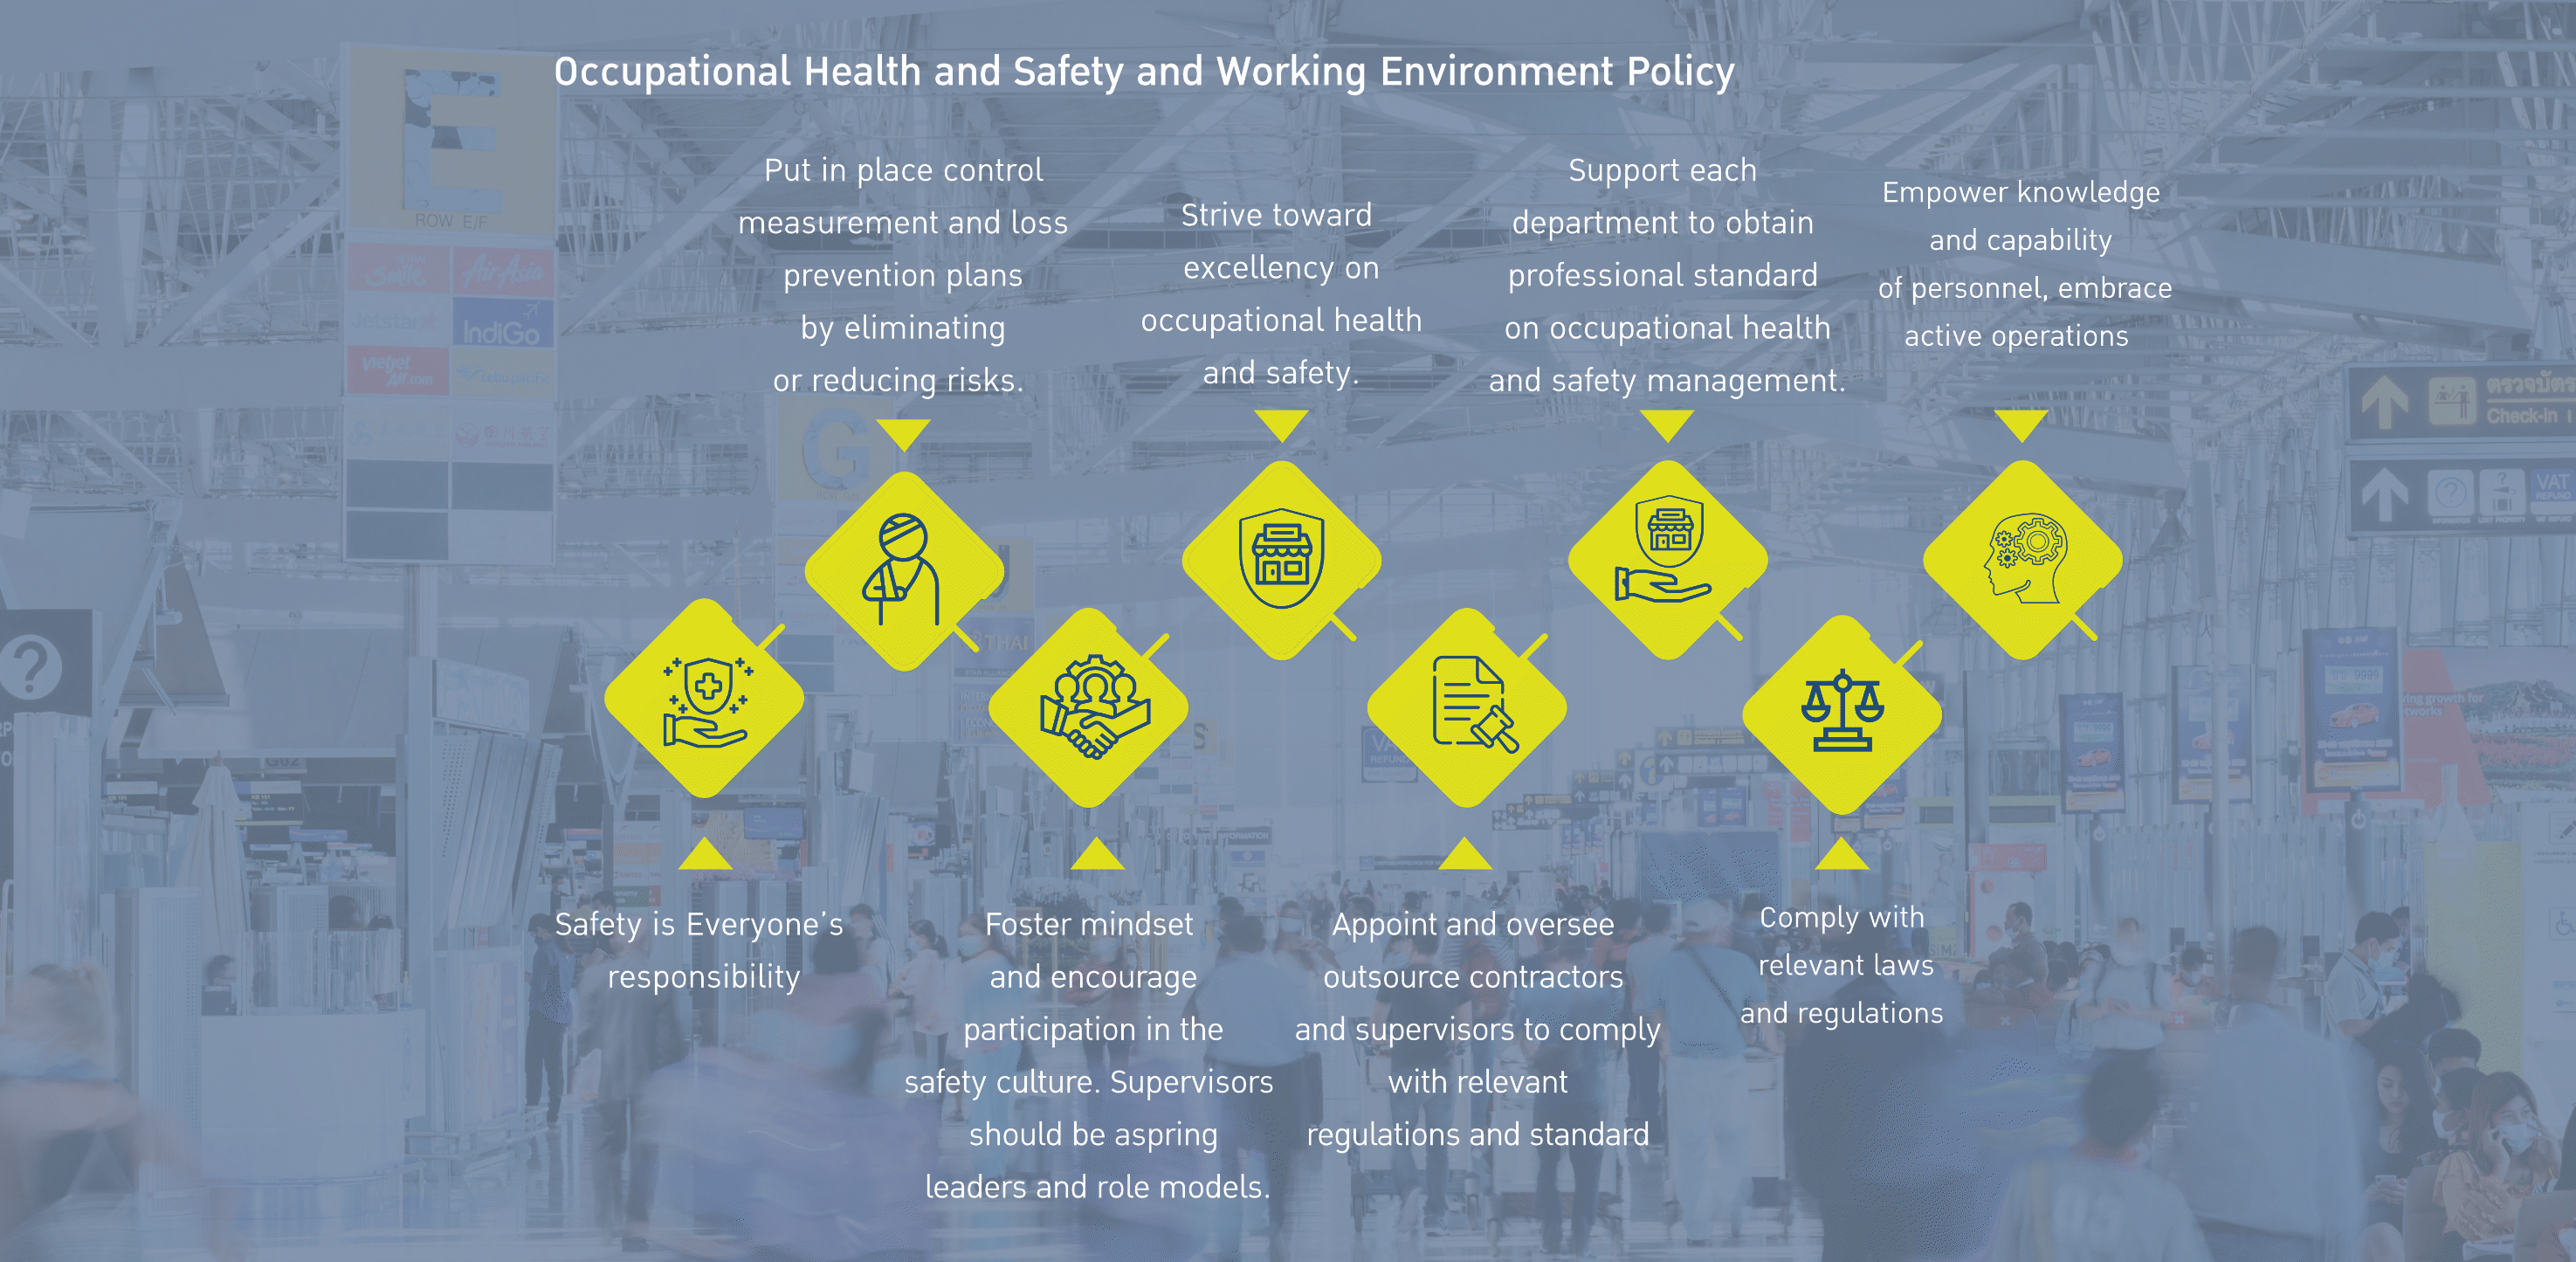 Occupational Health and Safety and Working Environment Policy